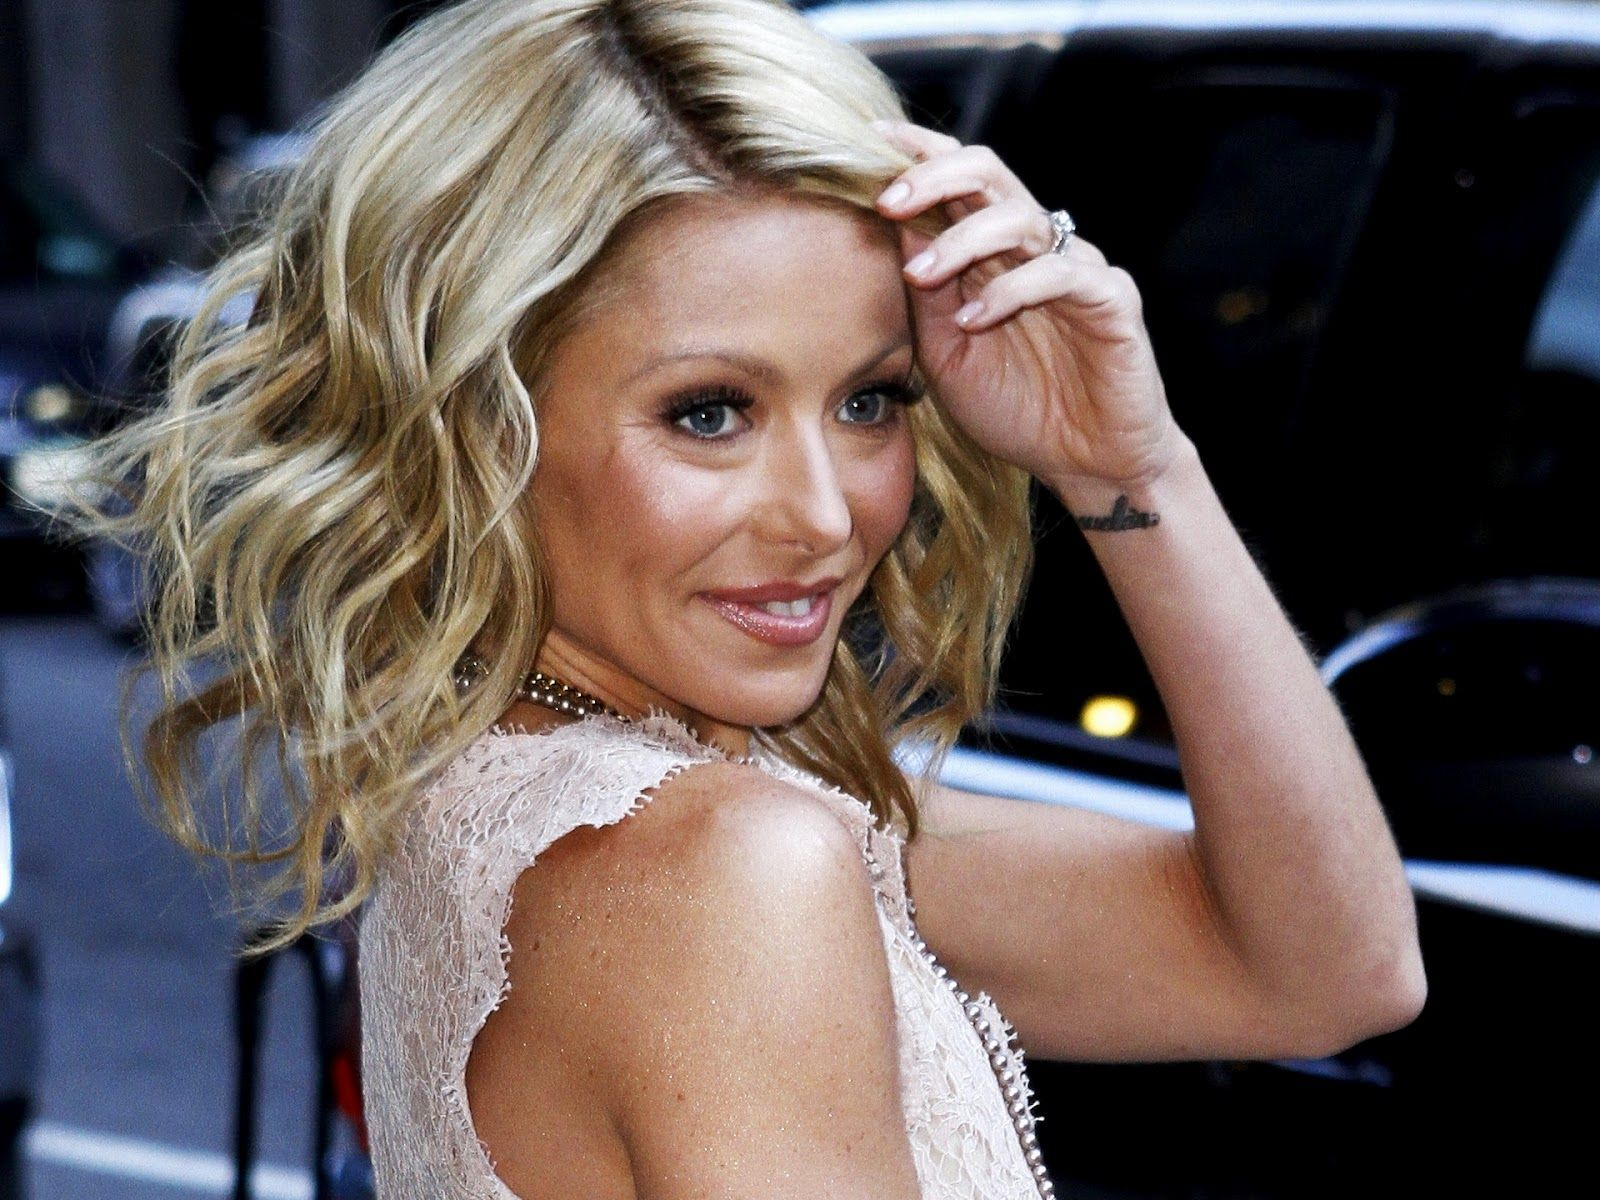 kelly ripa's recent joking proclamation that cnn's anderson cooper